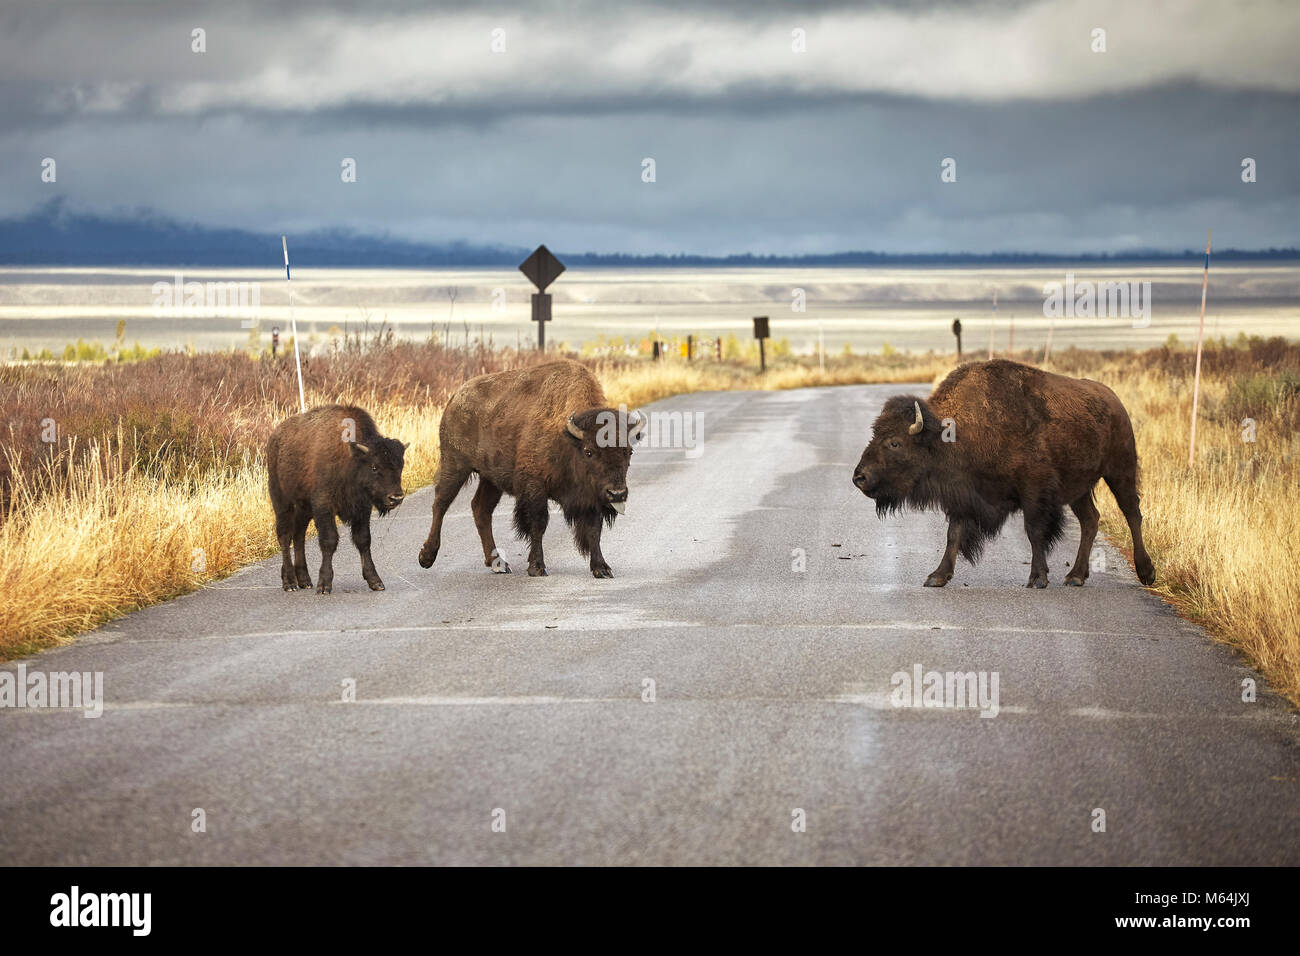 American bison family cross a road in Grand Teton National Park, Wyoming, USA. Stock Photo